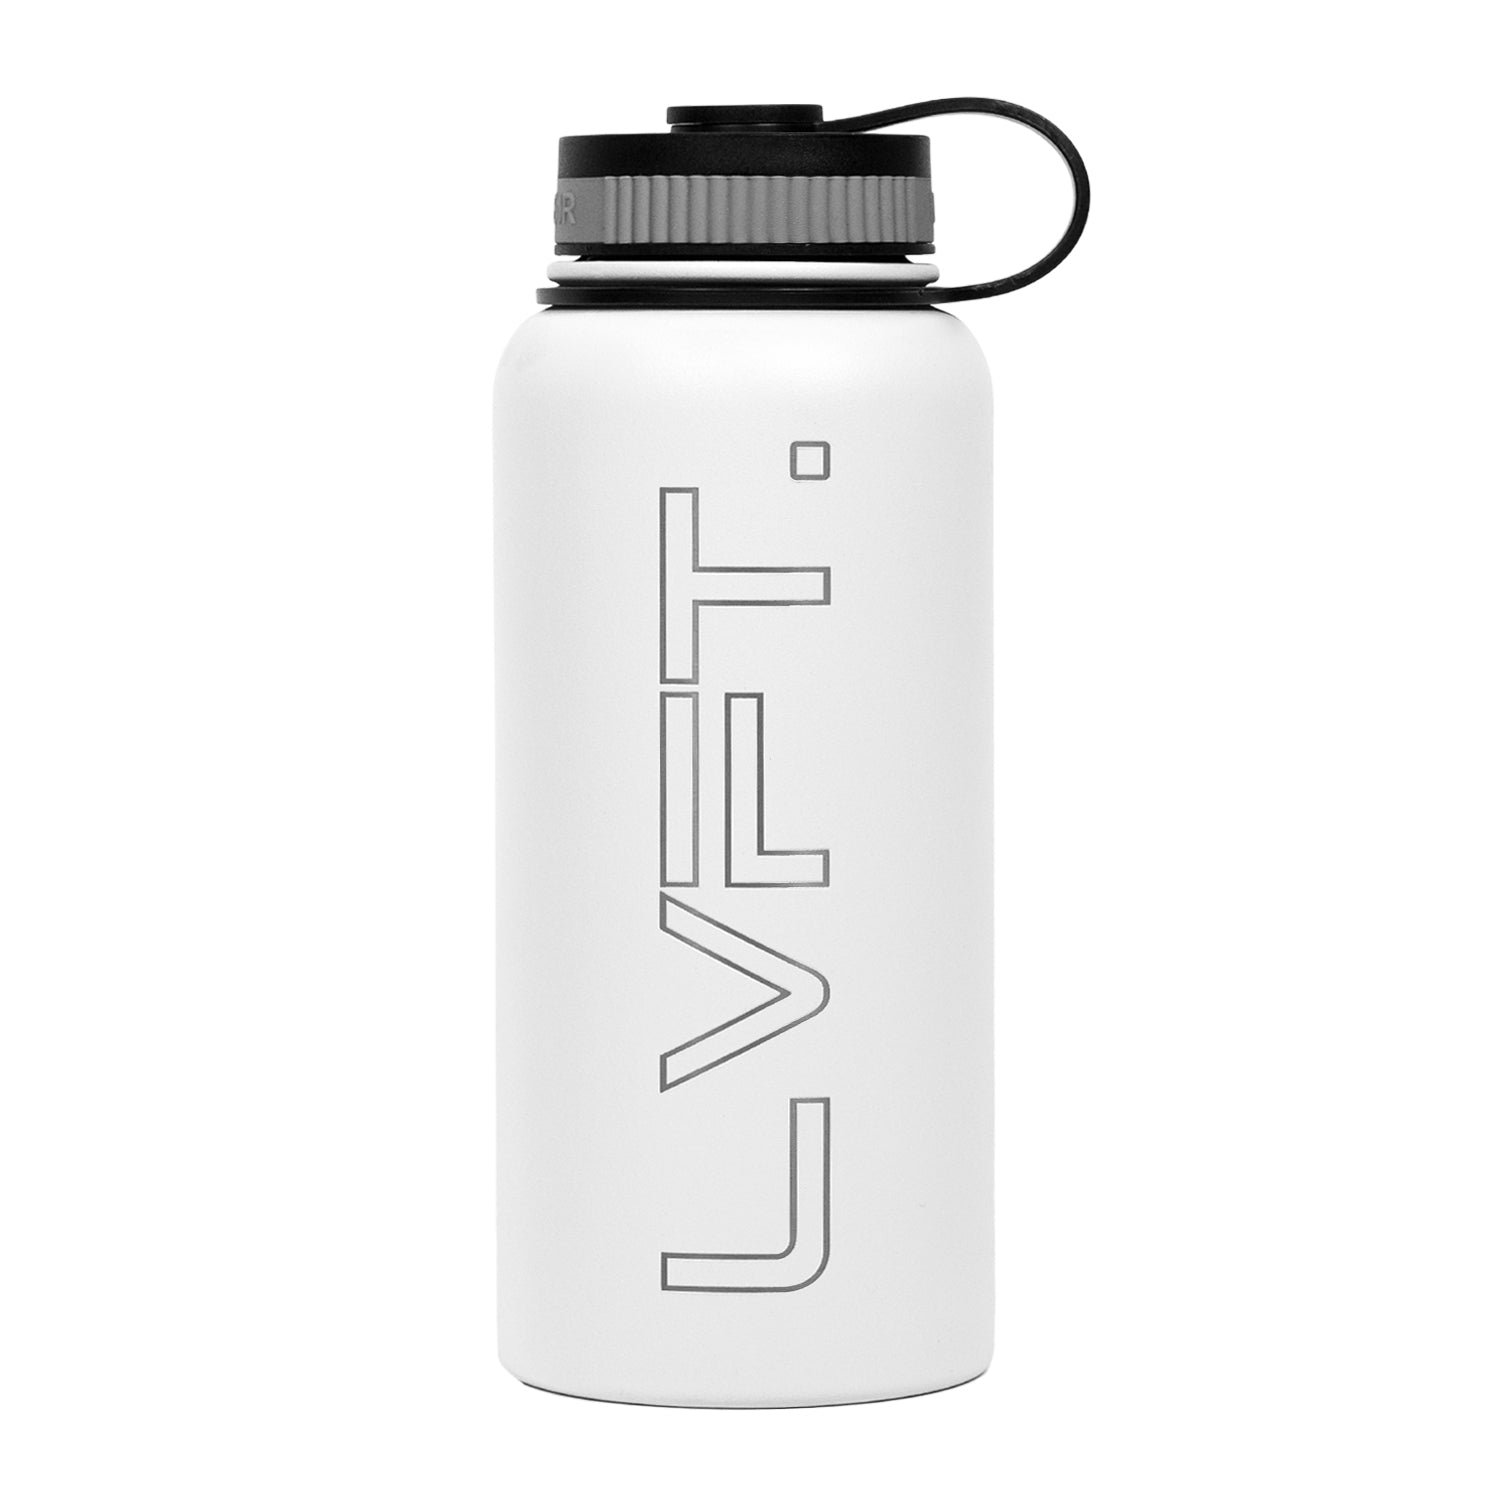 LVFT Stainless Steel Bottle - White